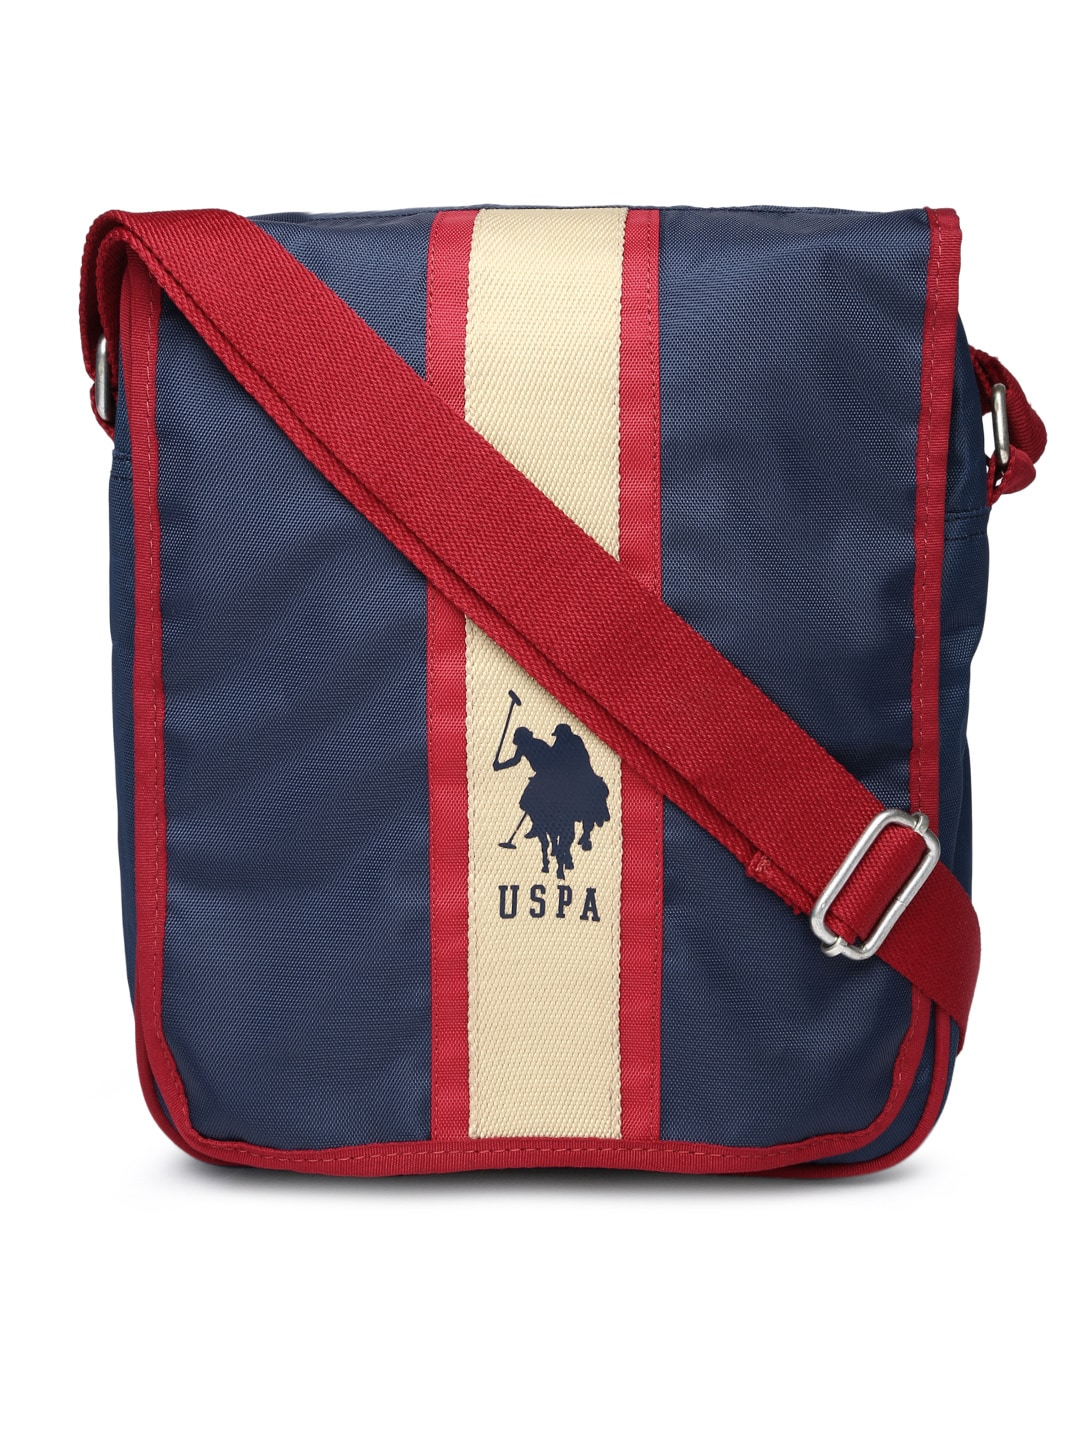 bec872c0f327 Us polo assn usax0098 Unisex Navy Messenger Bag - Best Price in ...